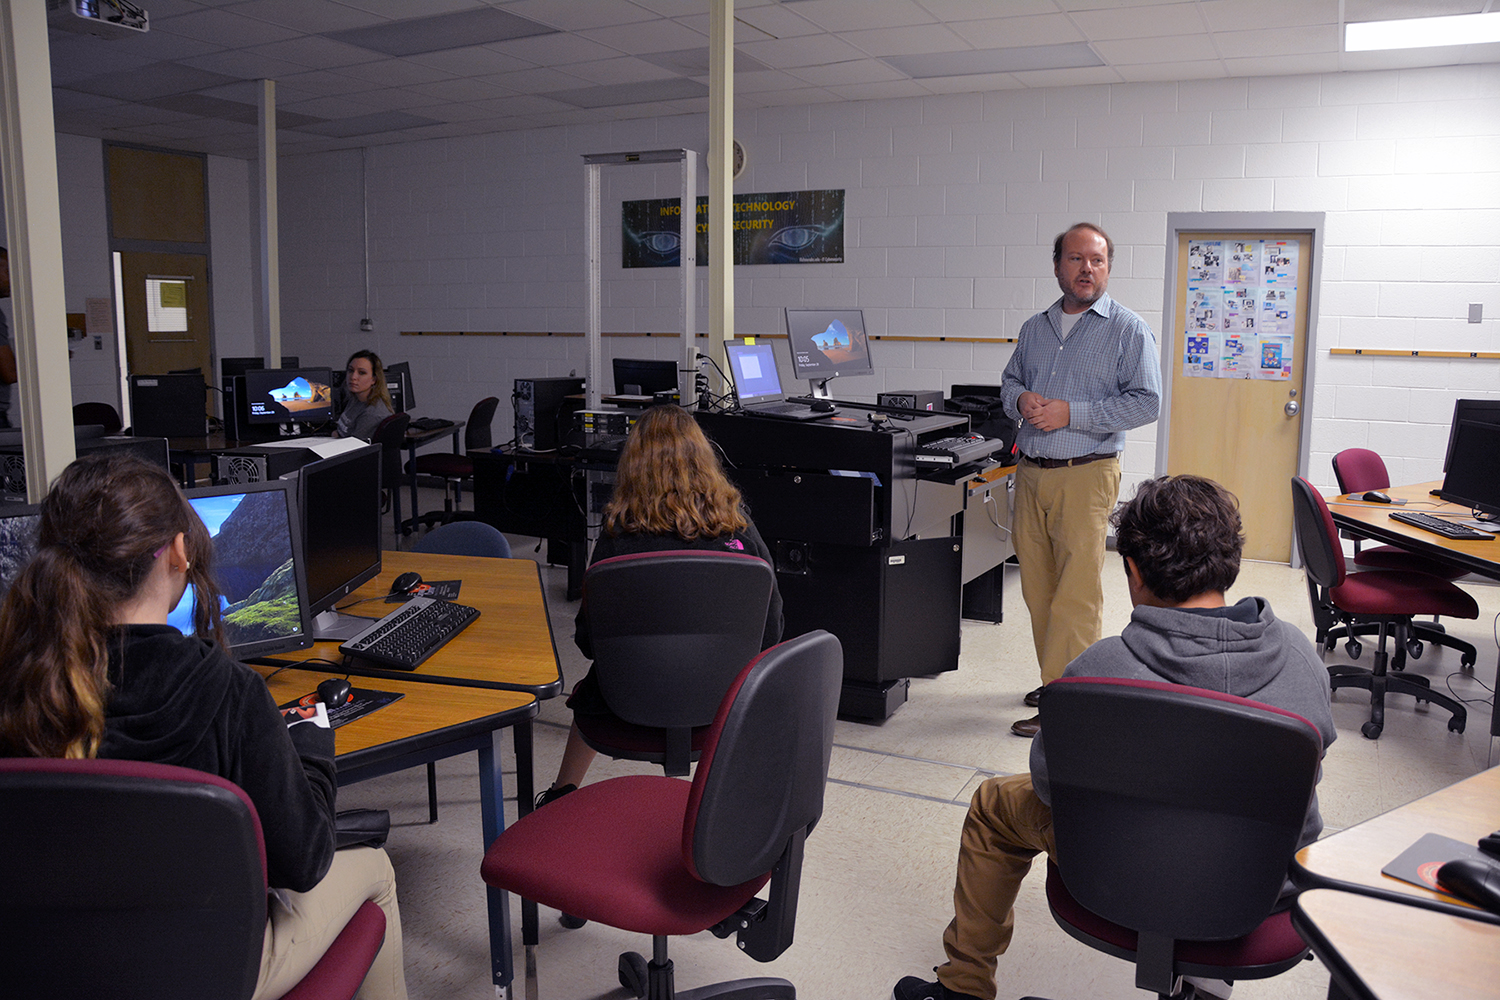 IT instructor talking to students in classroom